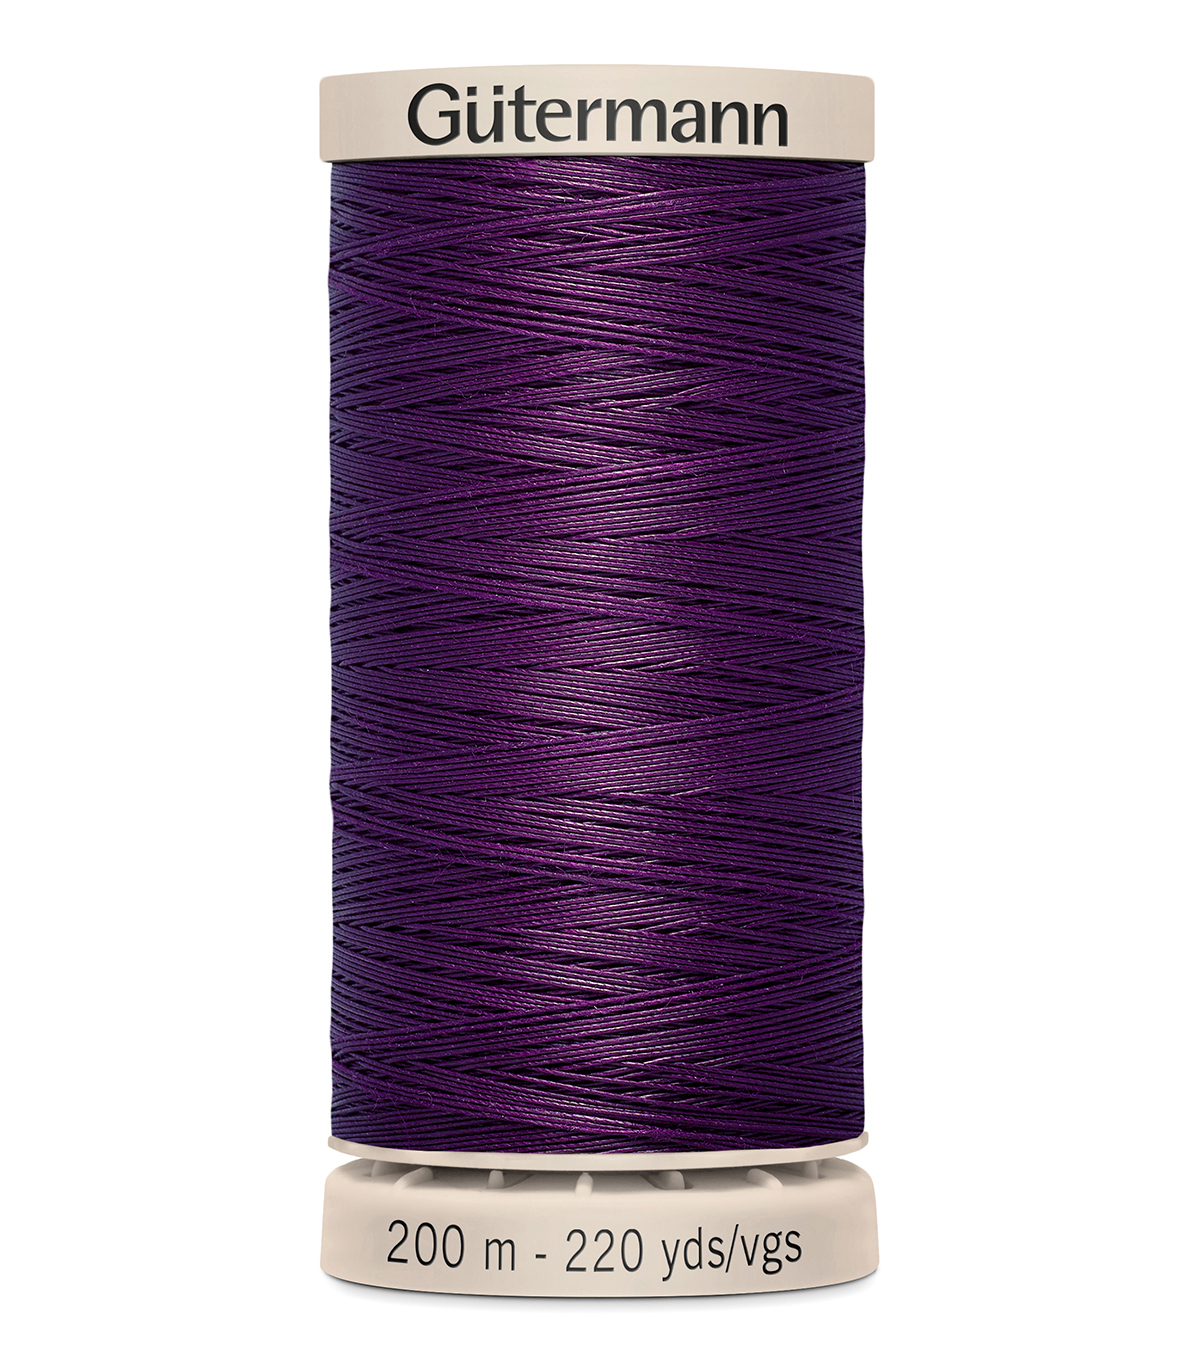 Gutermann Hand Quilting Thread 200 Meters (220 Yrds)-Primary, Grape #3832